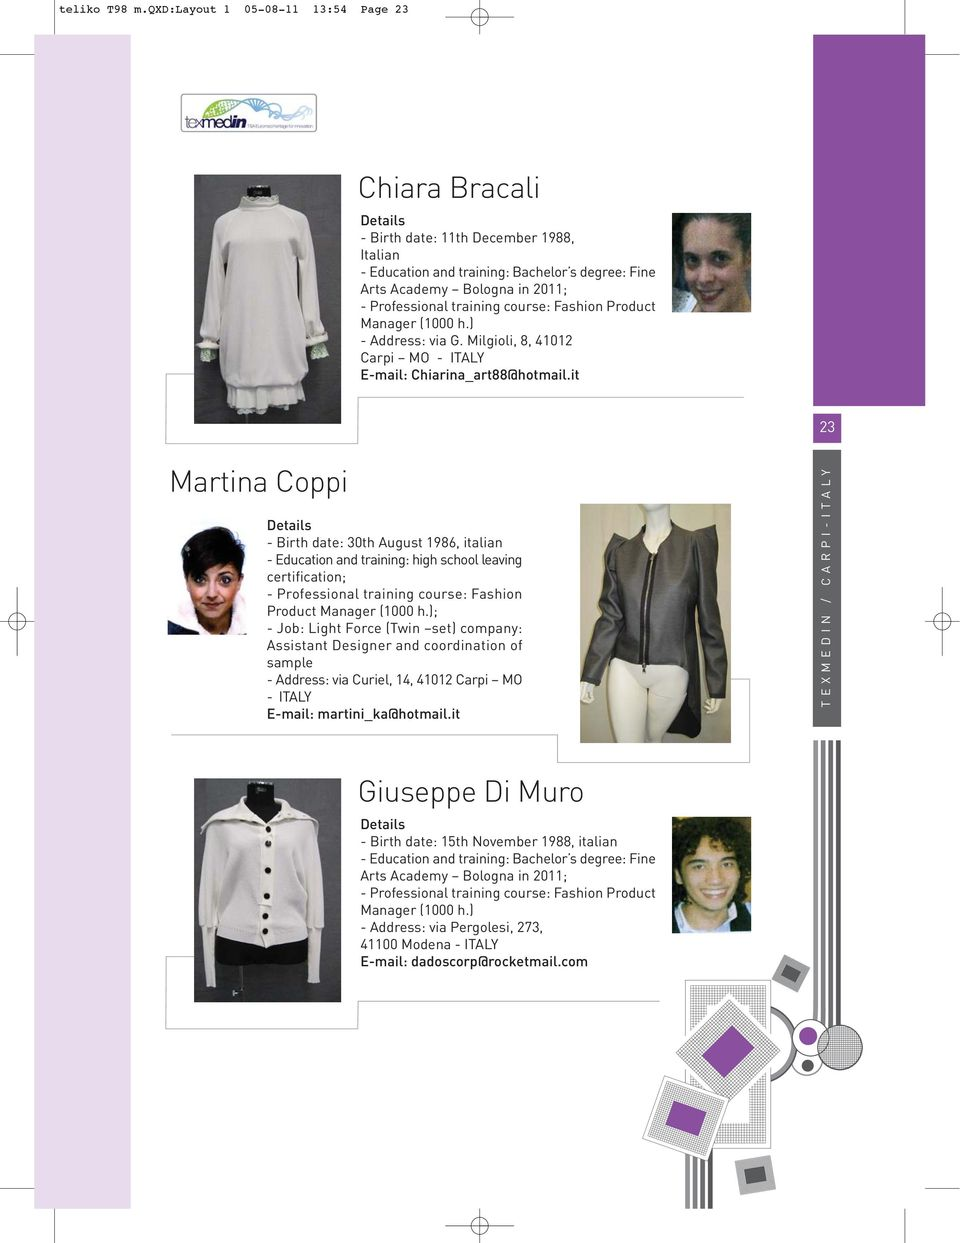 course: Fashion Product Manager (1000 h.) - Address: via G. Milgioli, 8, 41012 Carpi MO - ITALY E-mail: Chiarina_art88@hotmail.